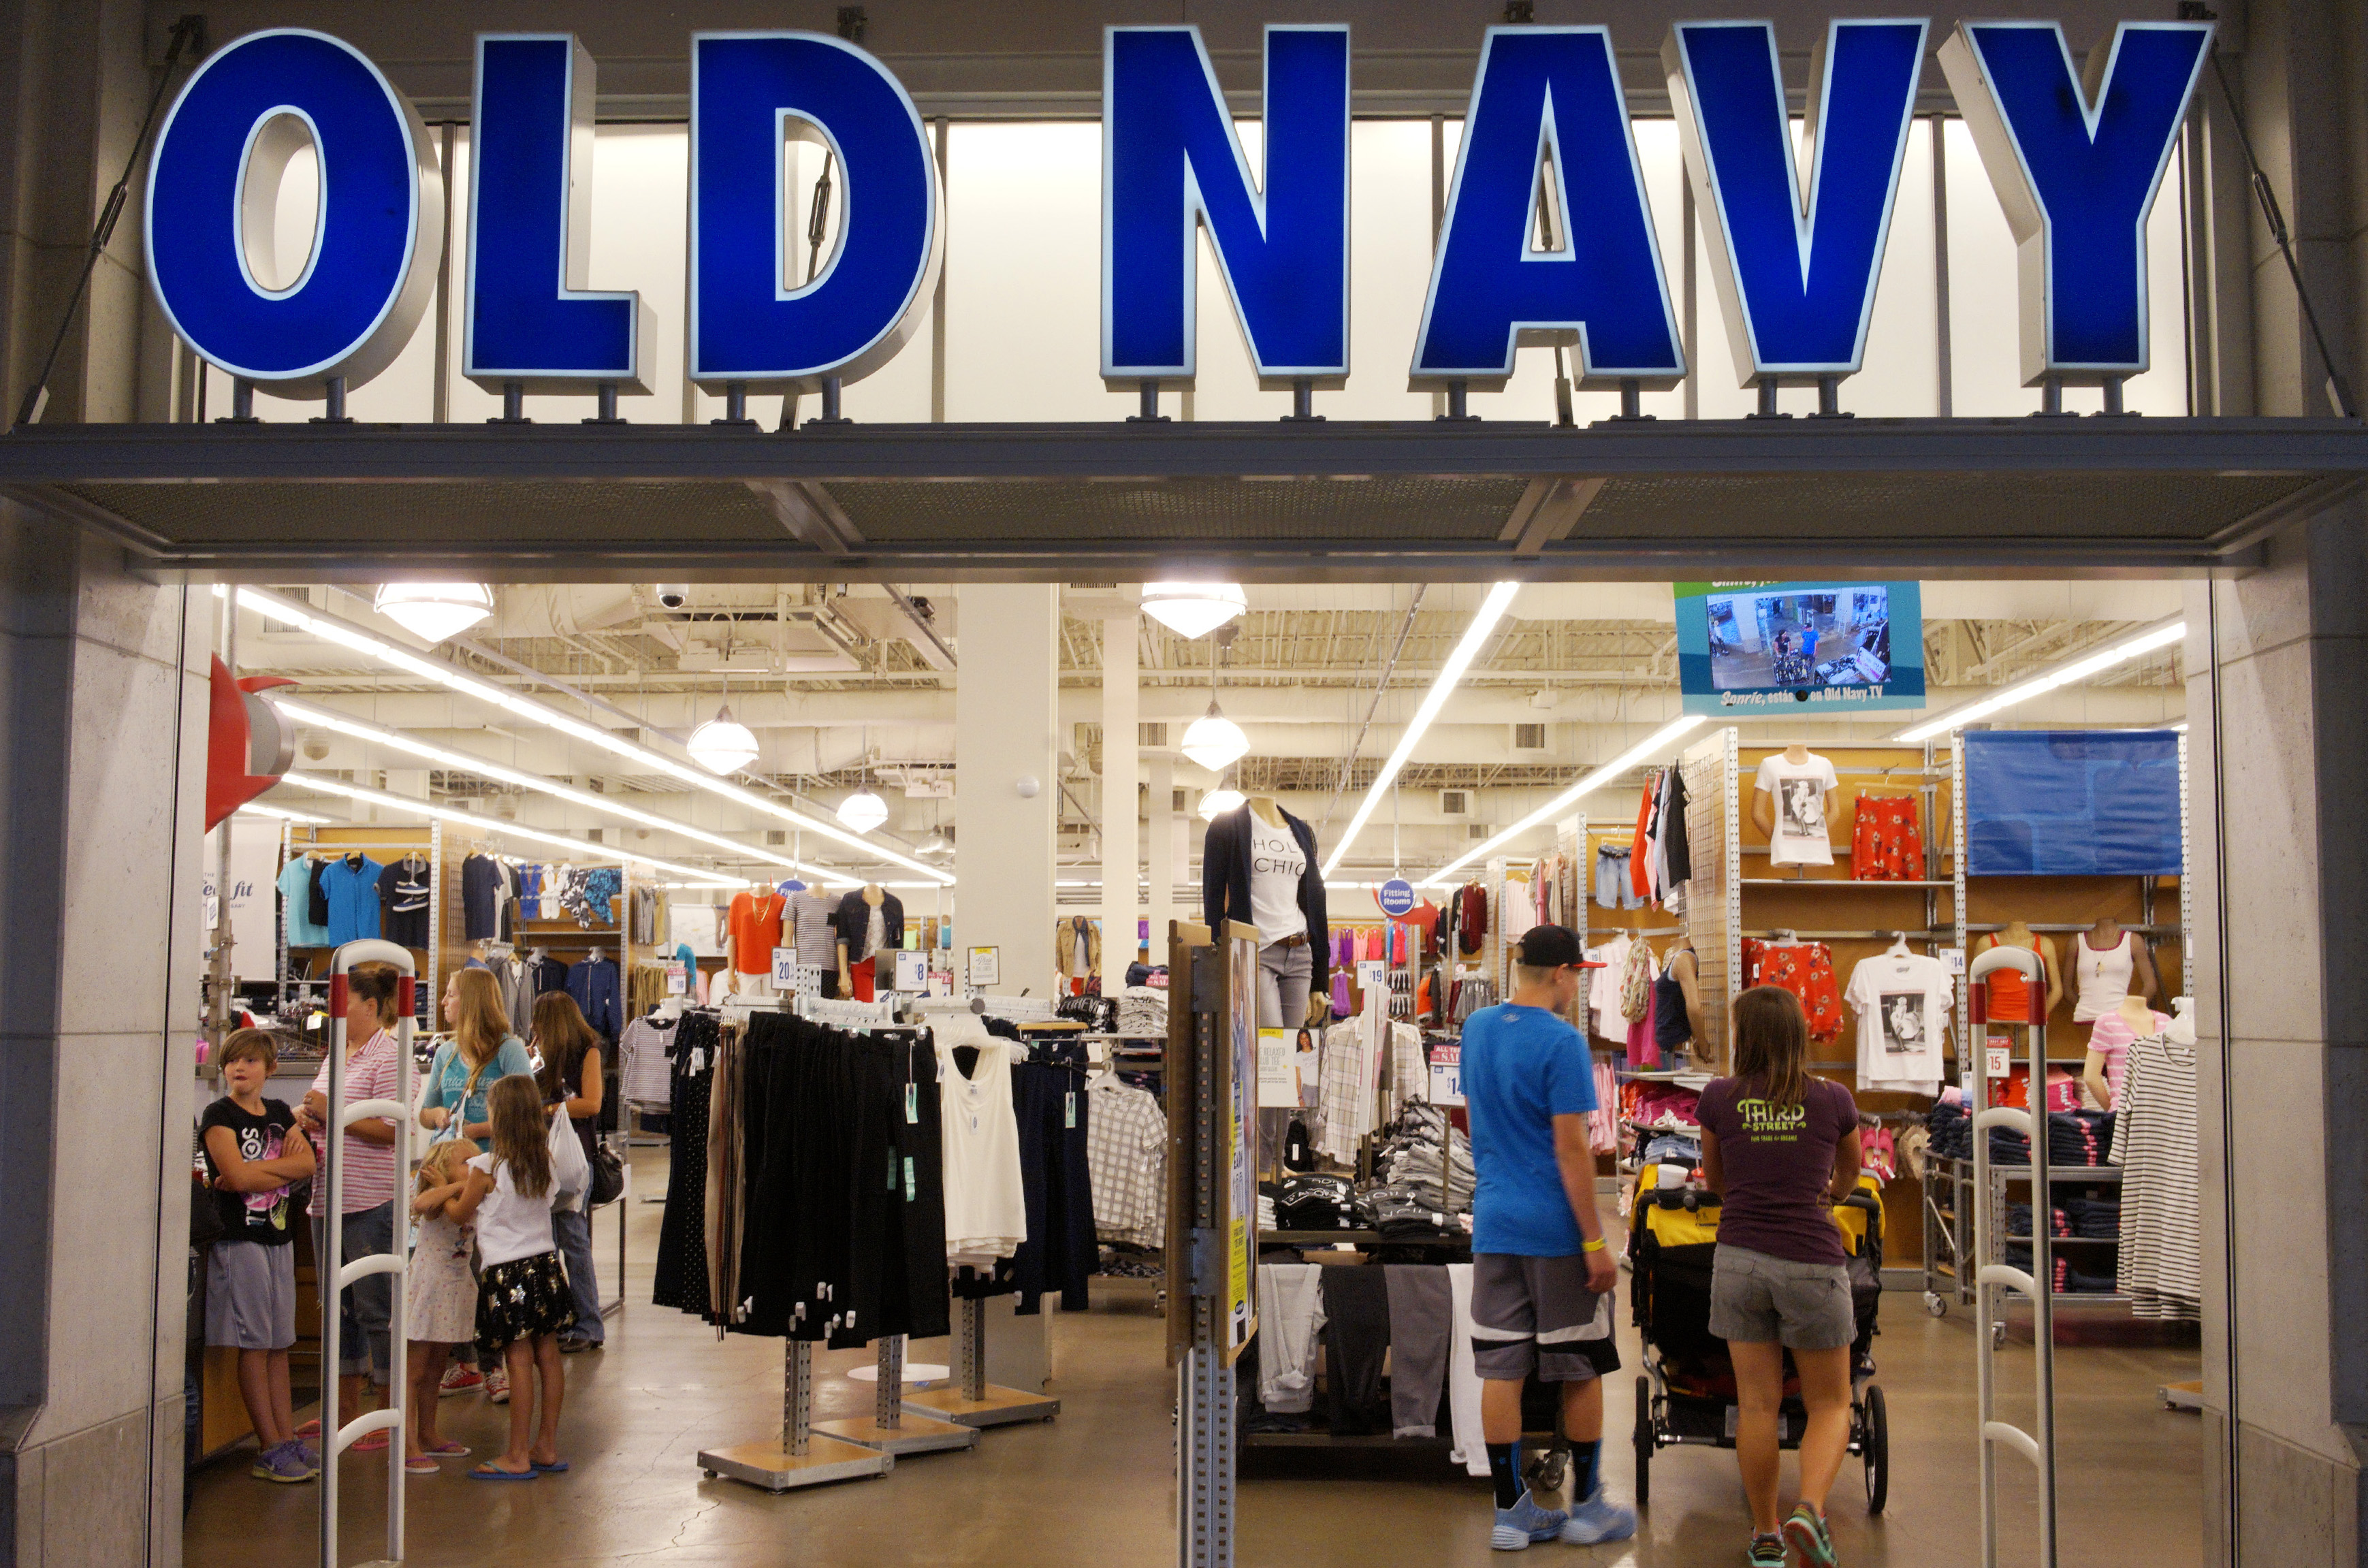 Shop for great deals on Old Navy at Vinted. Save up to 80% on Old Navy and other pre-loved clothing in Summer dresses to complete your style.